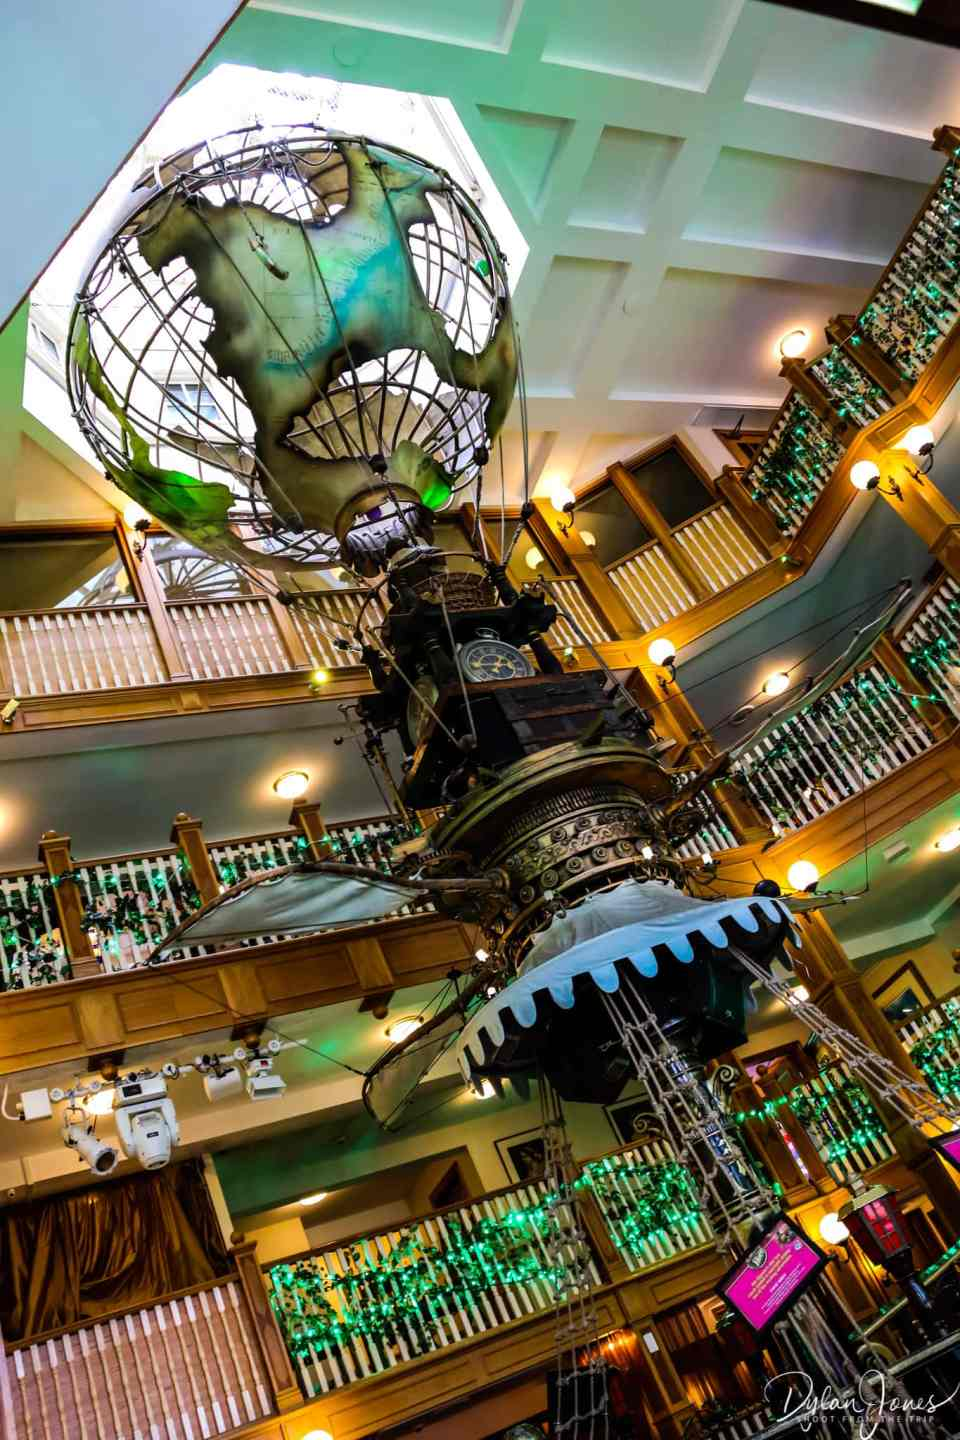 The Atrium and flying ship at the Alton Towers Hotel